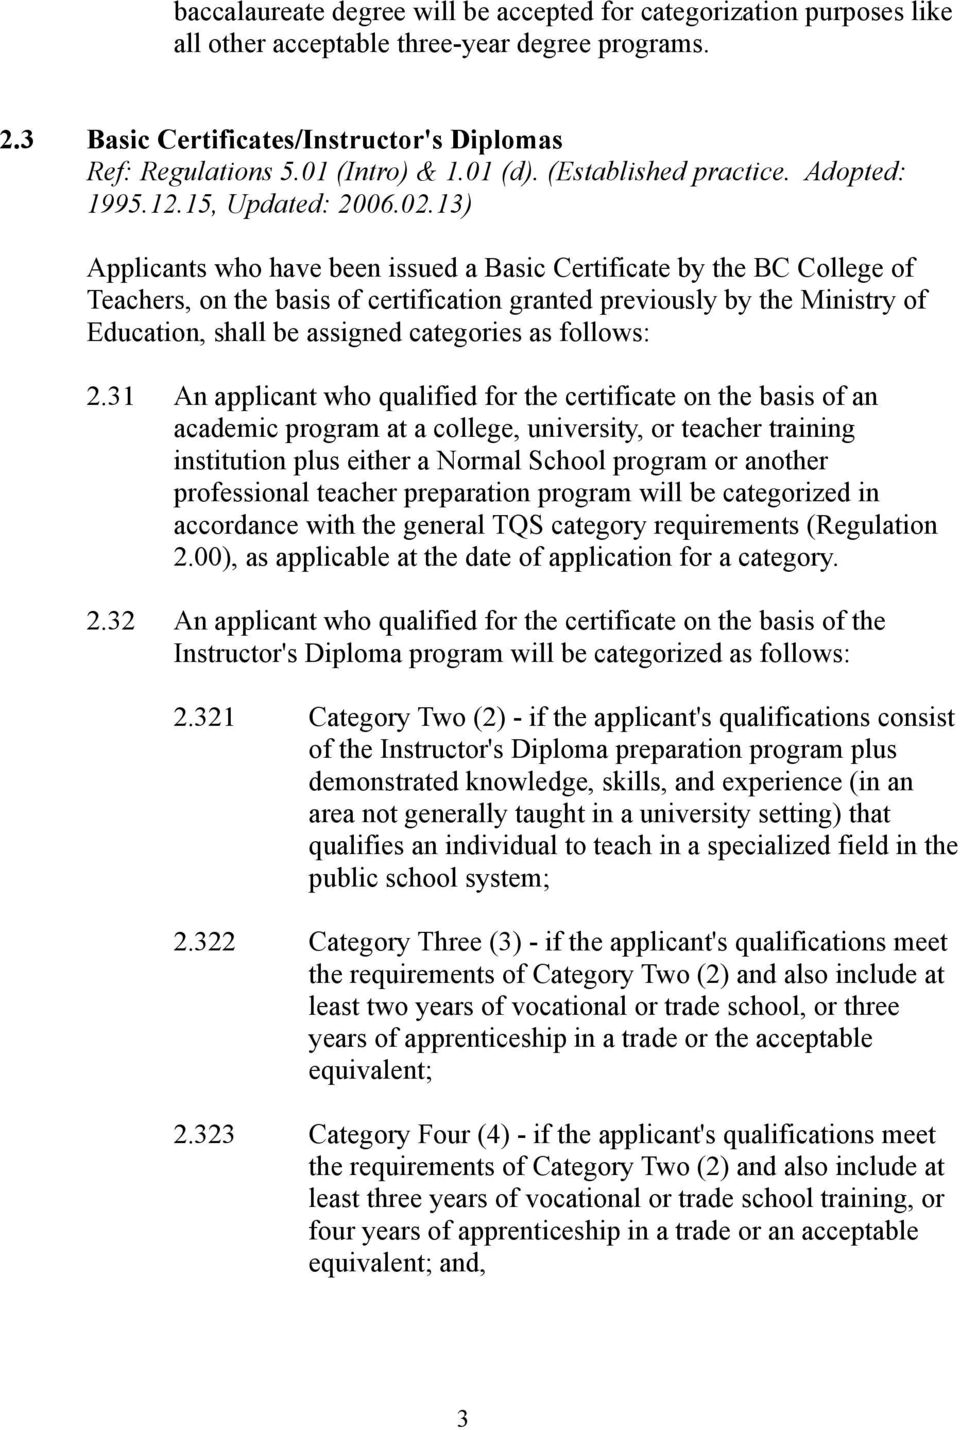 13) Applicants who have been issued a Basic Certificate by the BC College of Teachers, on the basis of certification granted previously by the Ministry of Education, shall be assigned categories as